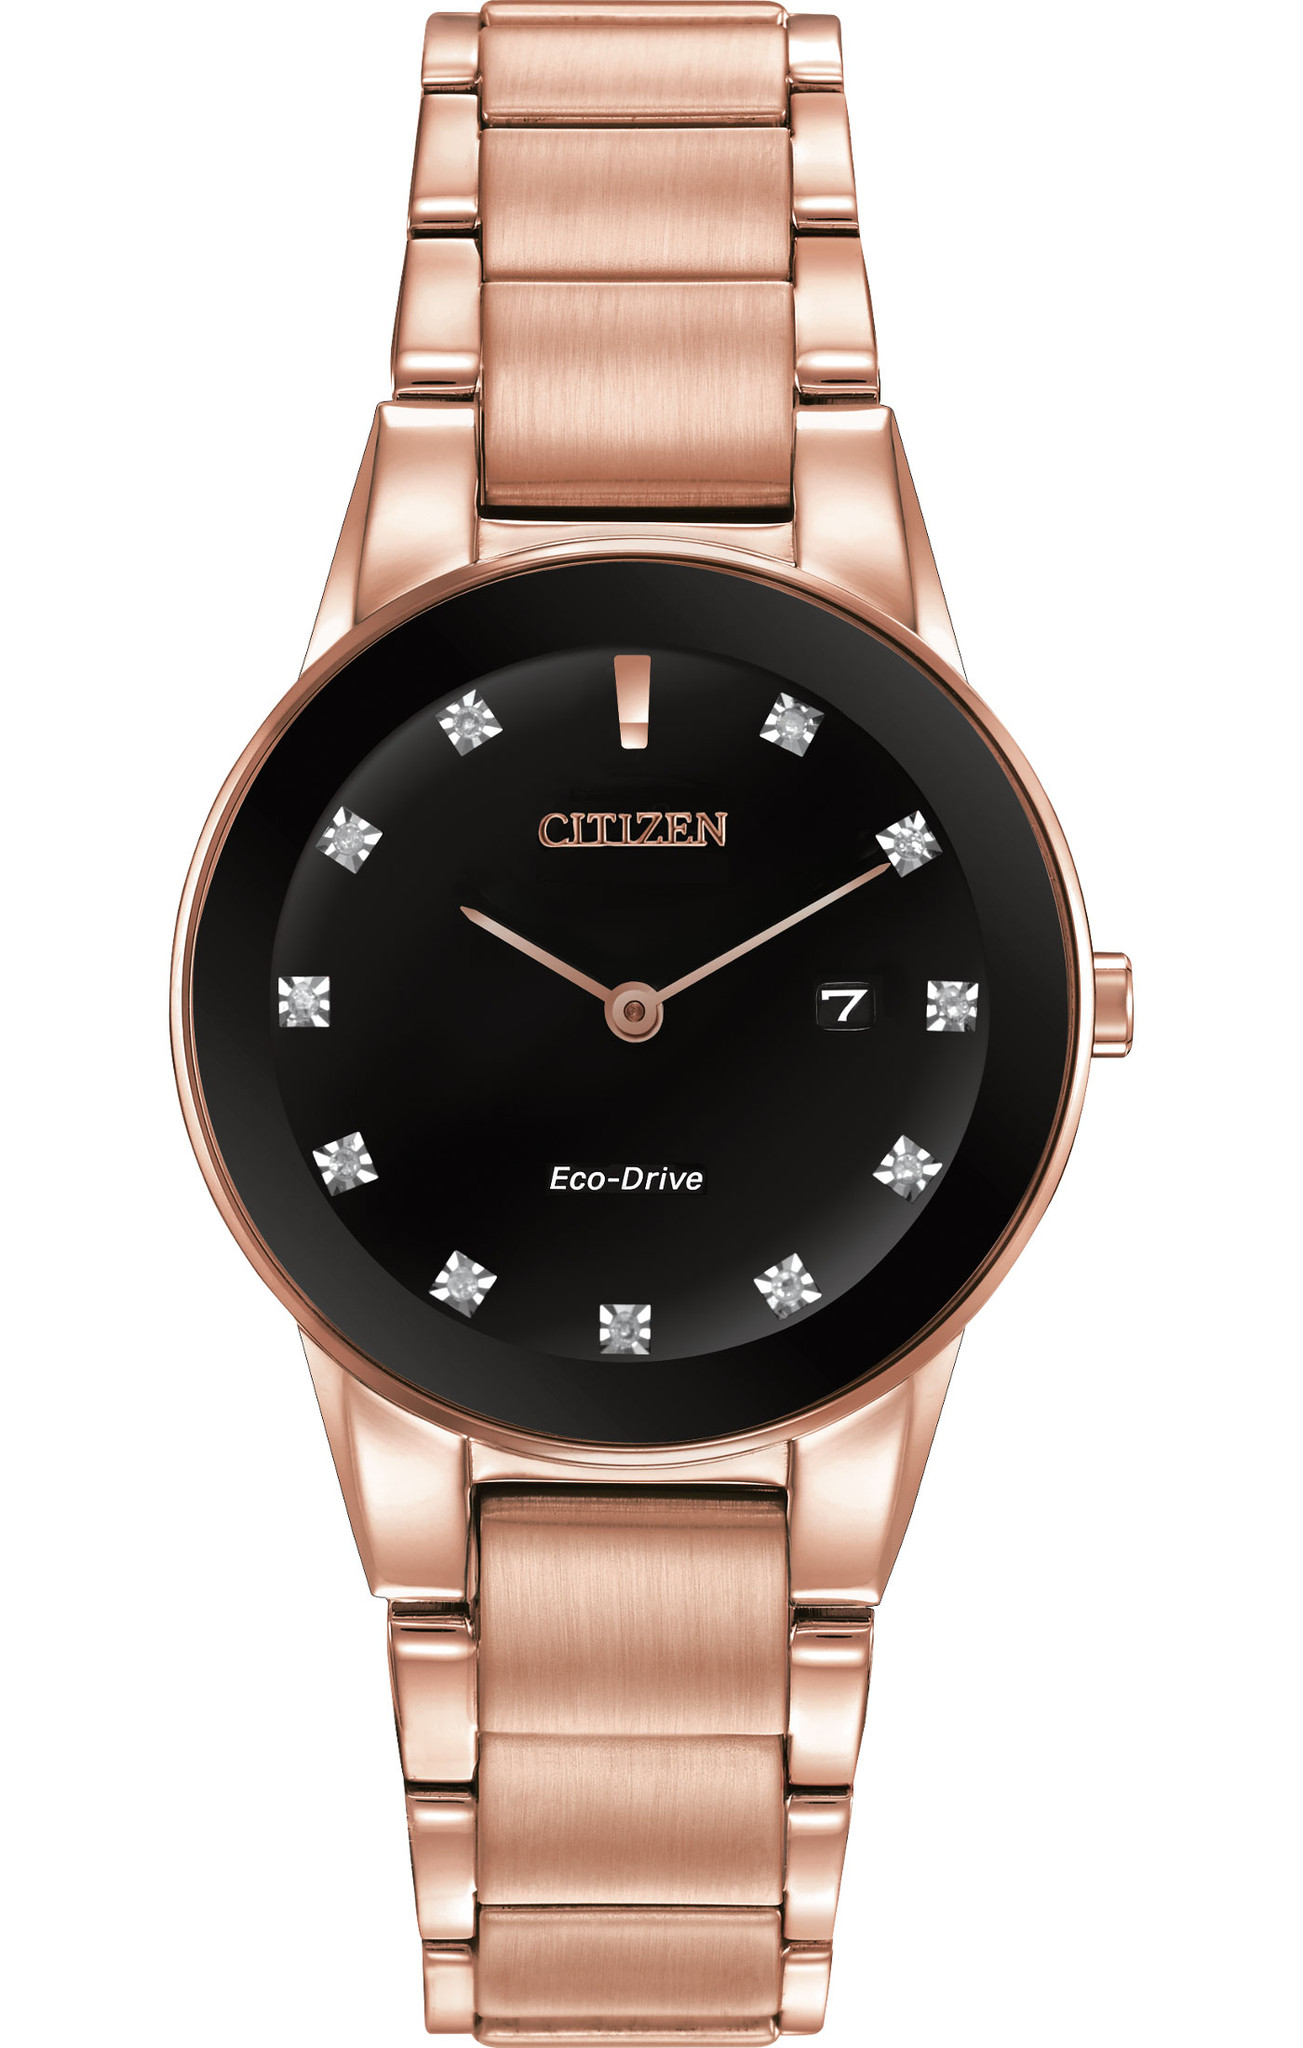 77fbd200a4 CITIZEN - Axiom Rose Gold Black Eco-Drive Analog Women's Watch GA1058-59Q -  Walmart.com